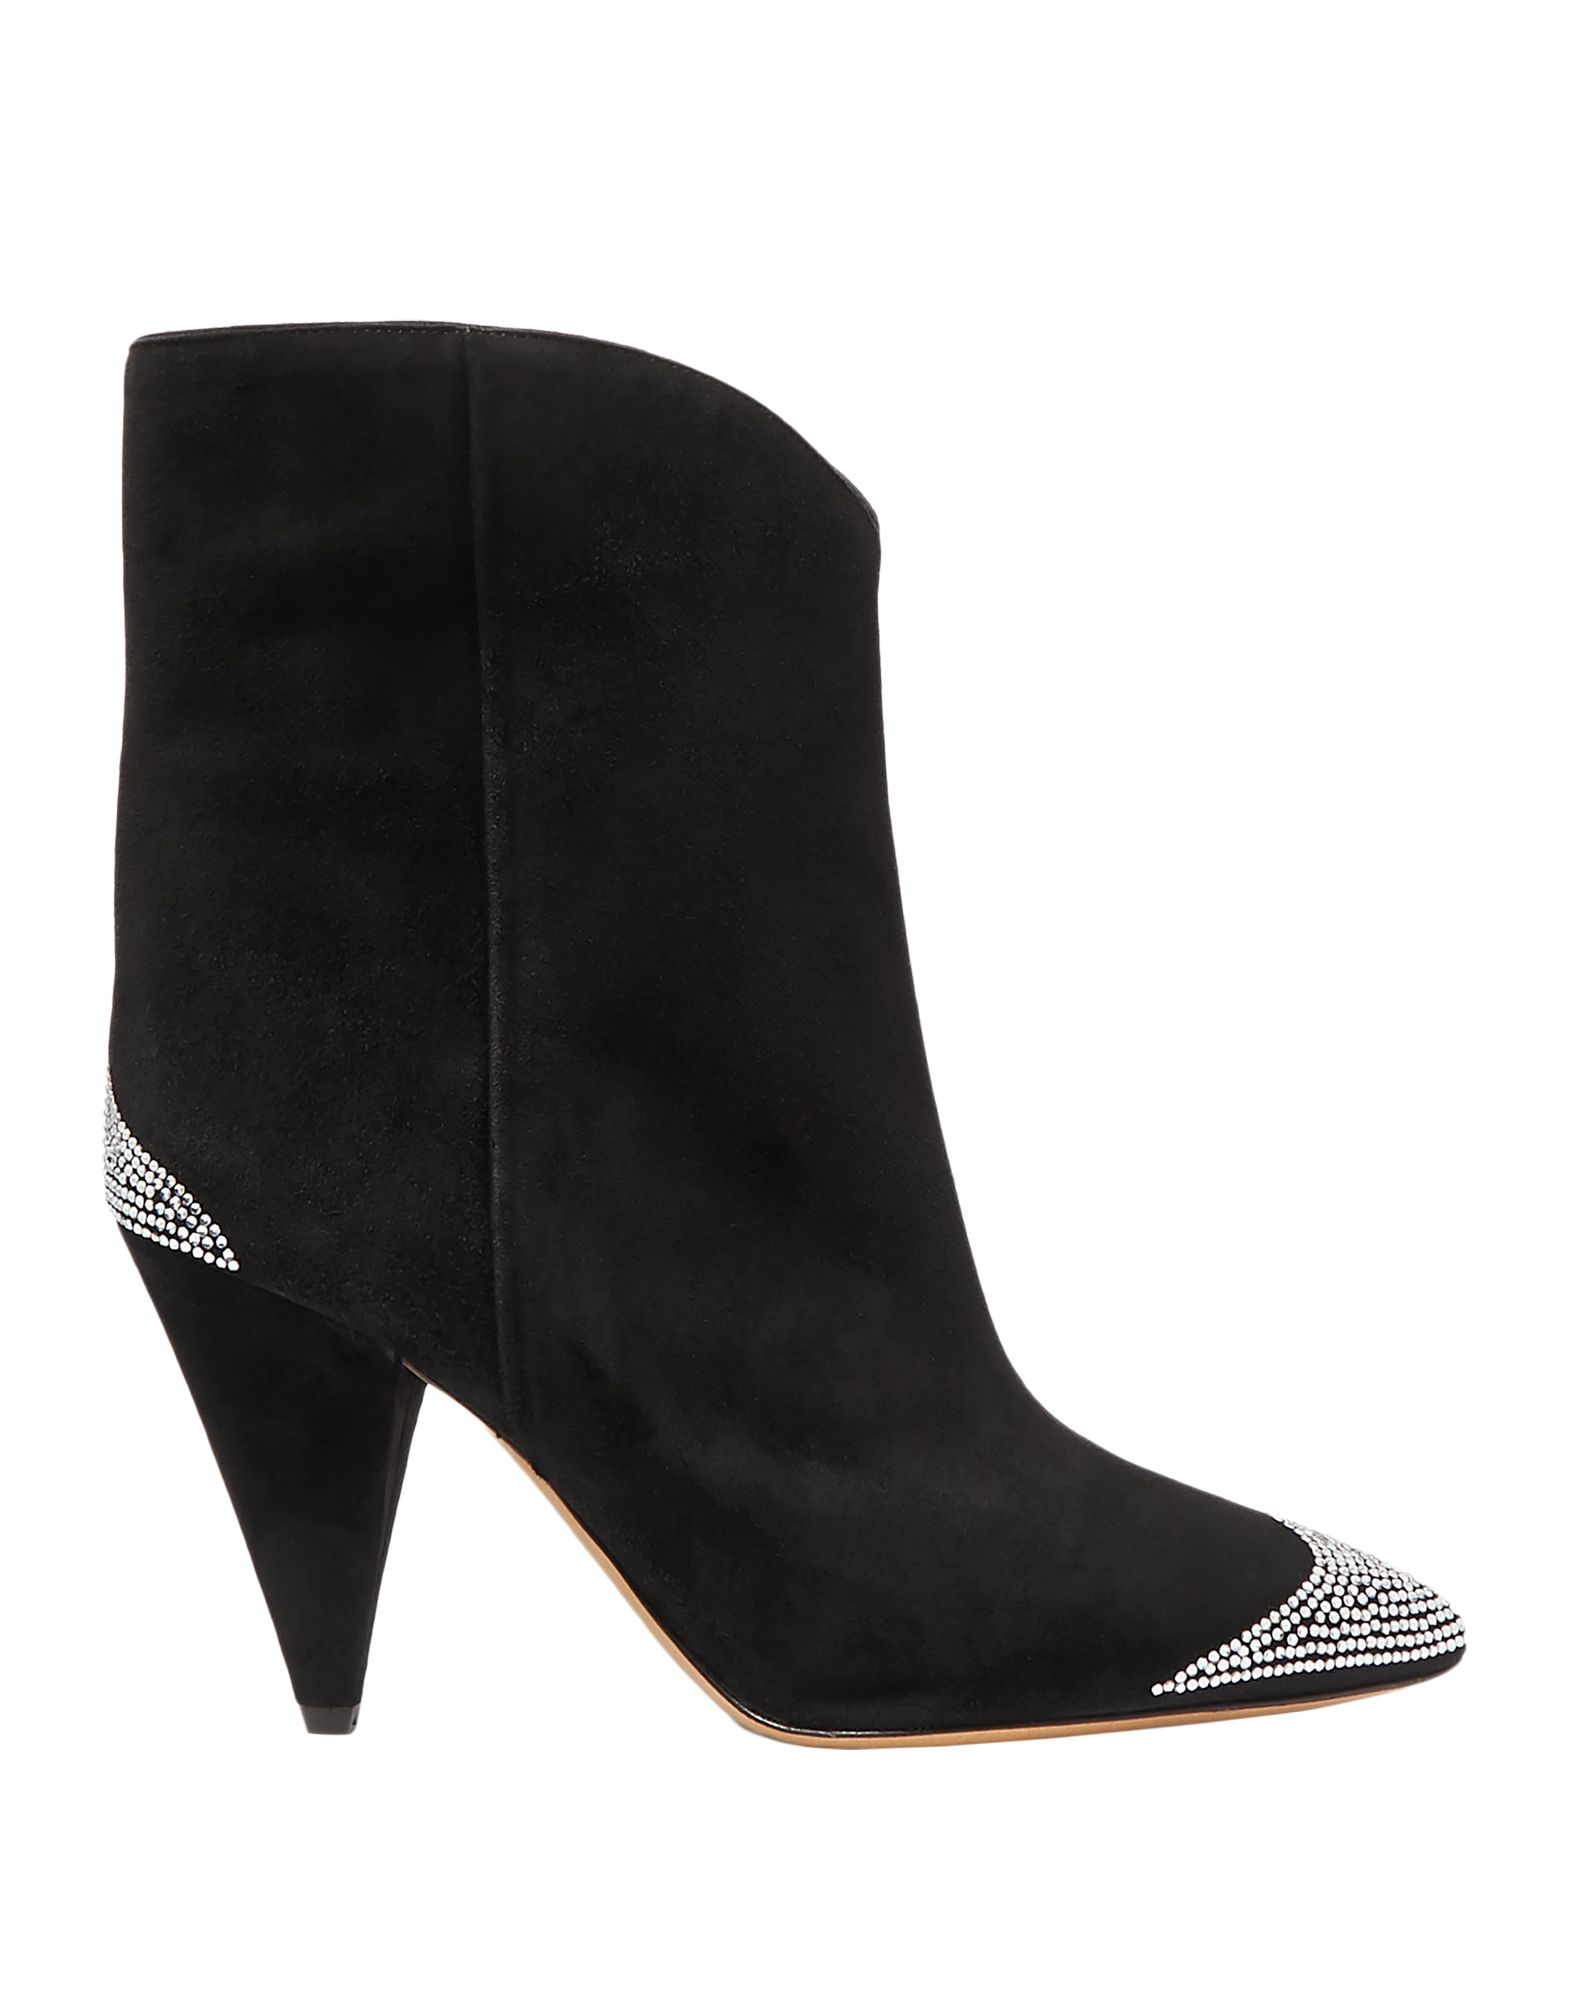 ISABEL MARANT Booties. metal applications, solid color, narrow toeline, cone heel, leather sole, leather lining, contains non-textile parts of animal origin, small sized. Soft Leather